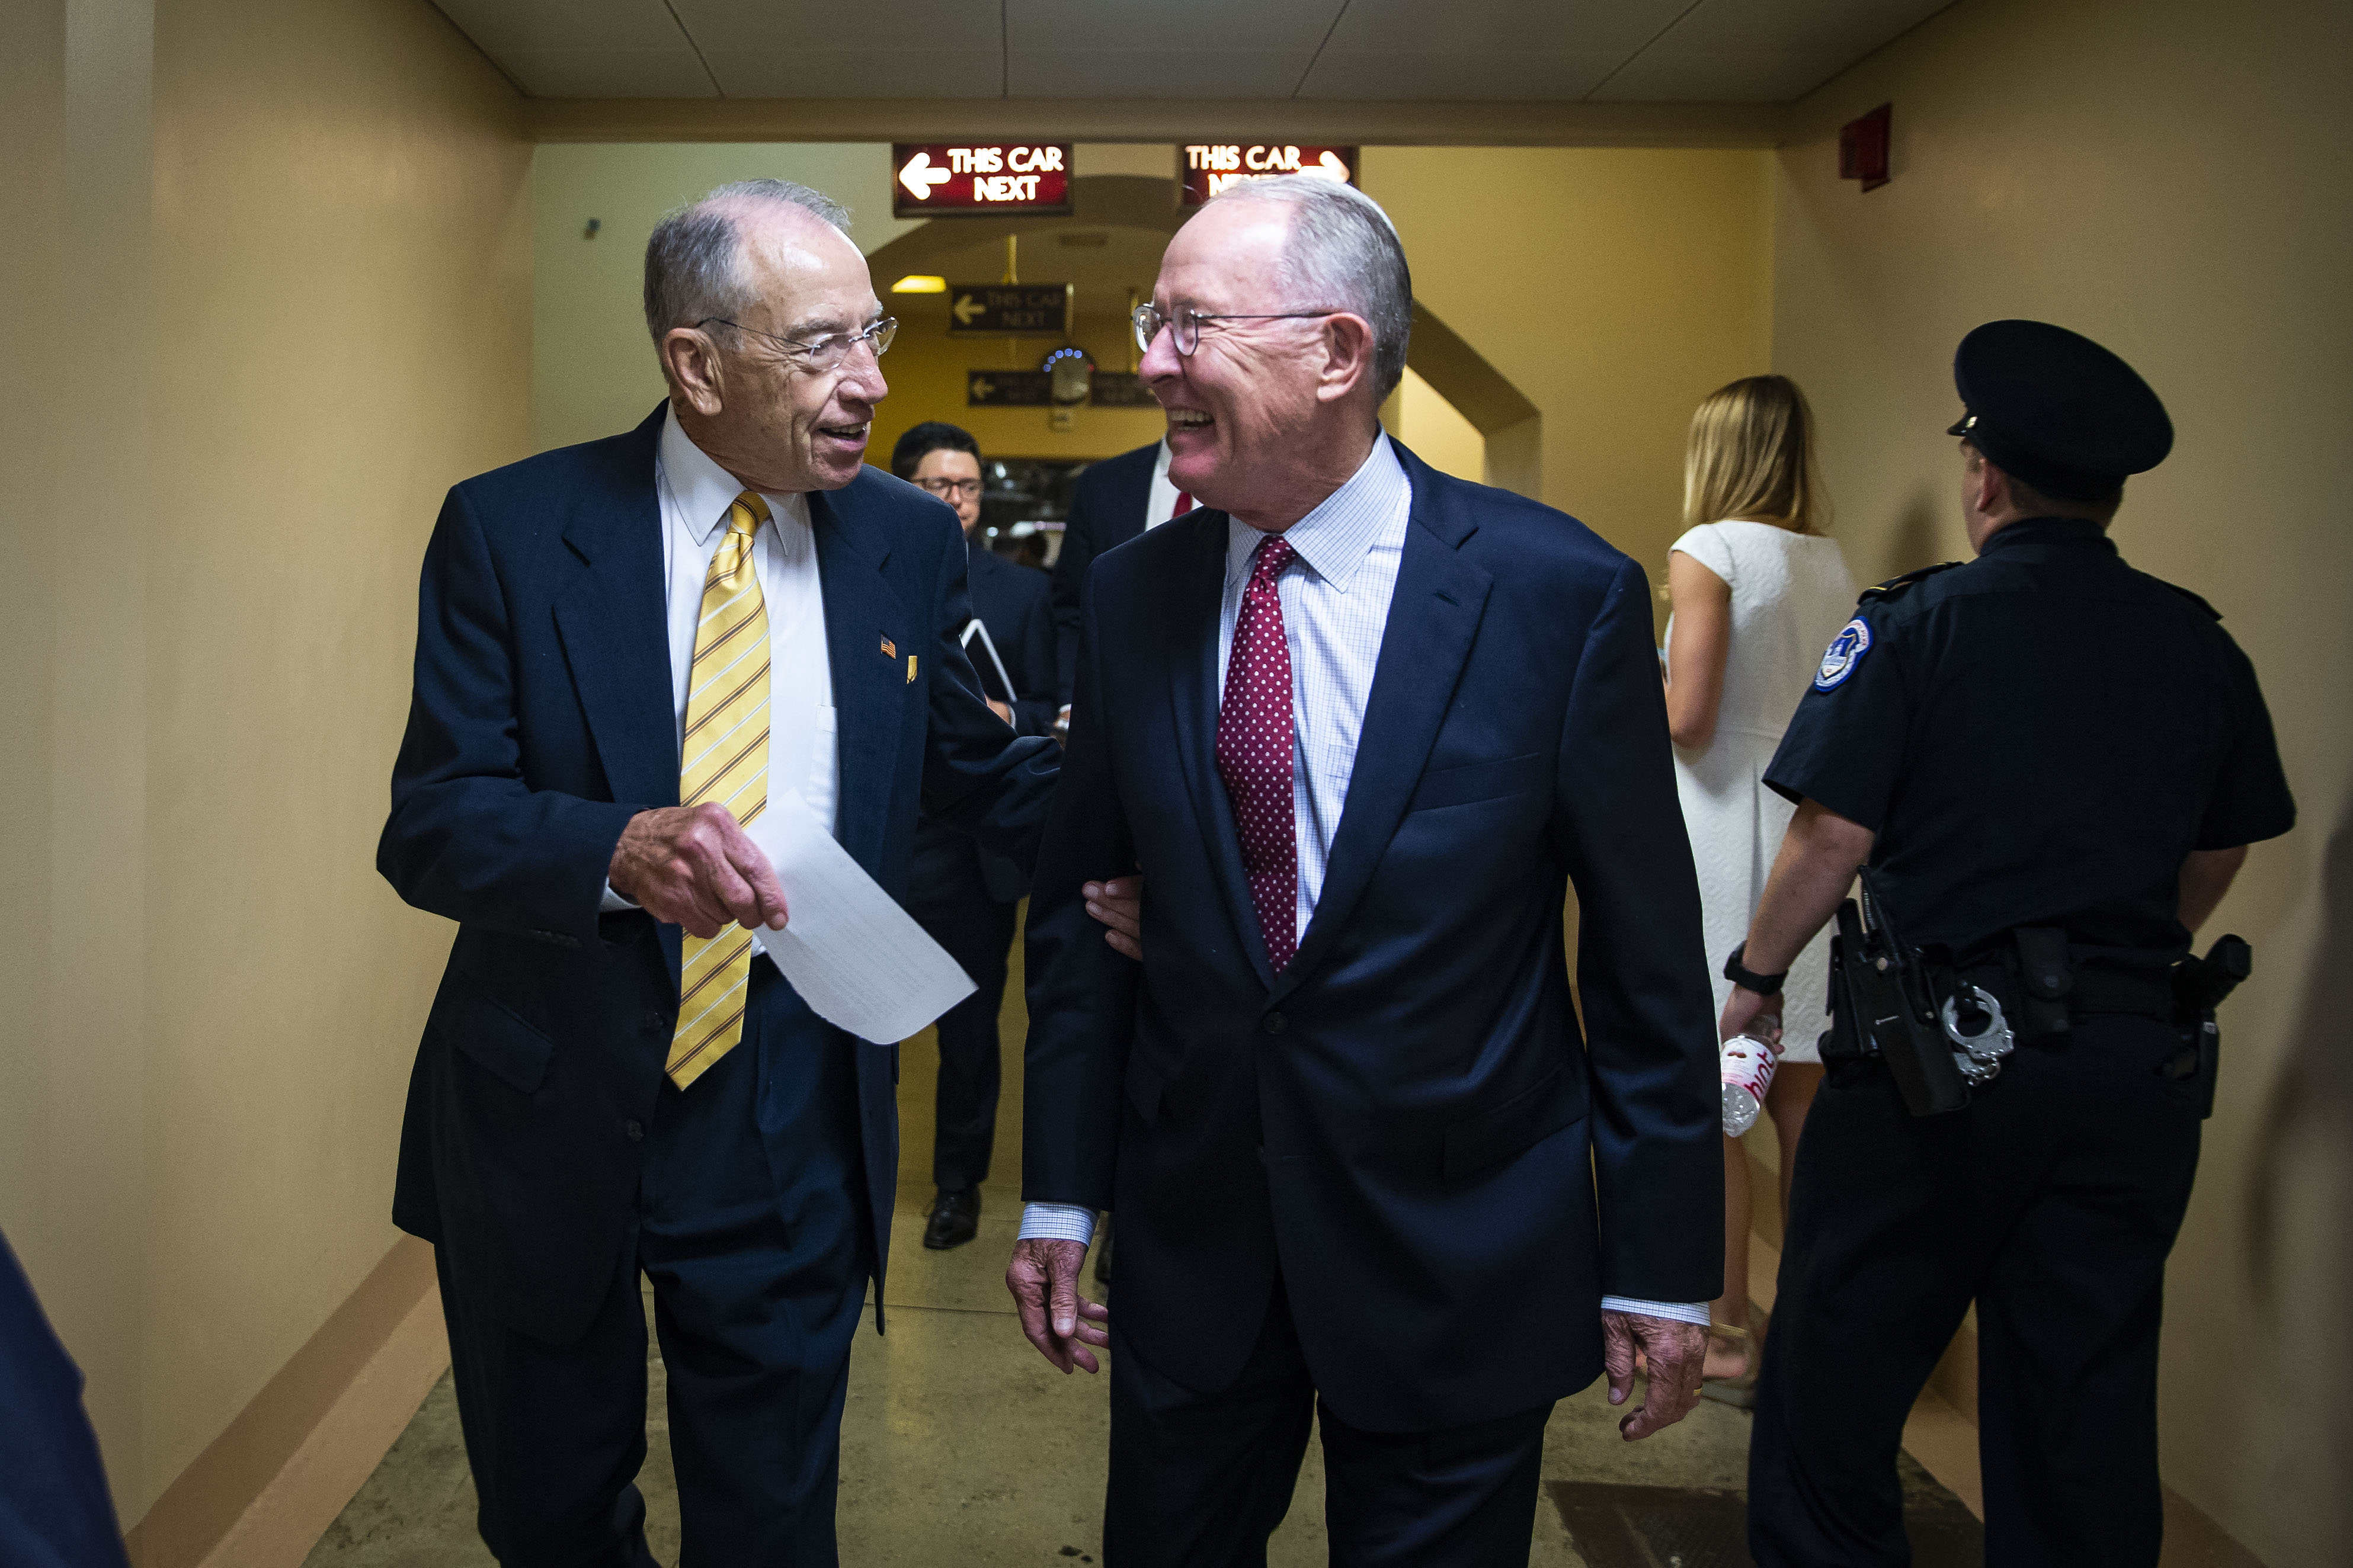 Sen. Chuck Grassley and Sen. Lamar Alexander confer as they depart the U.S. Capitol following a vote, on July 10, 2018 in Washington, DC. (Photo by Al Drago/Getty Images)